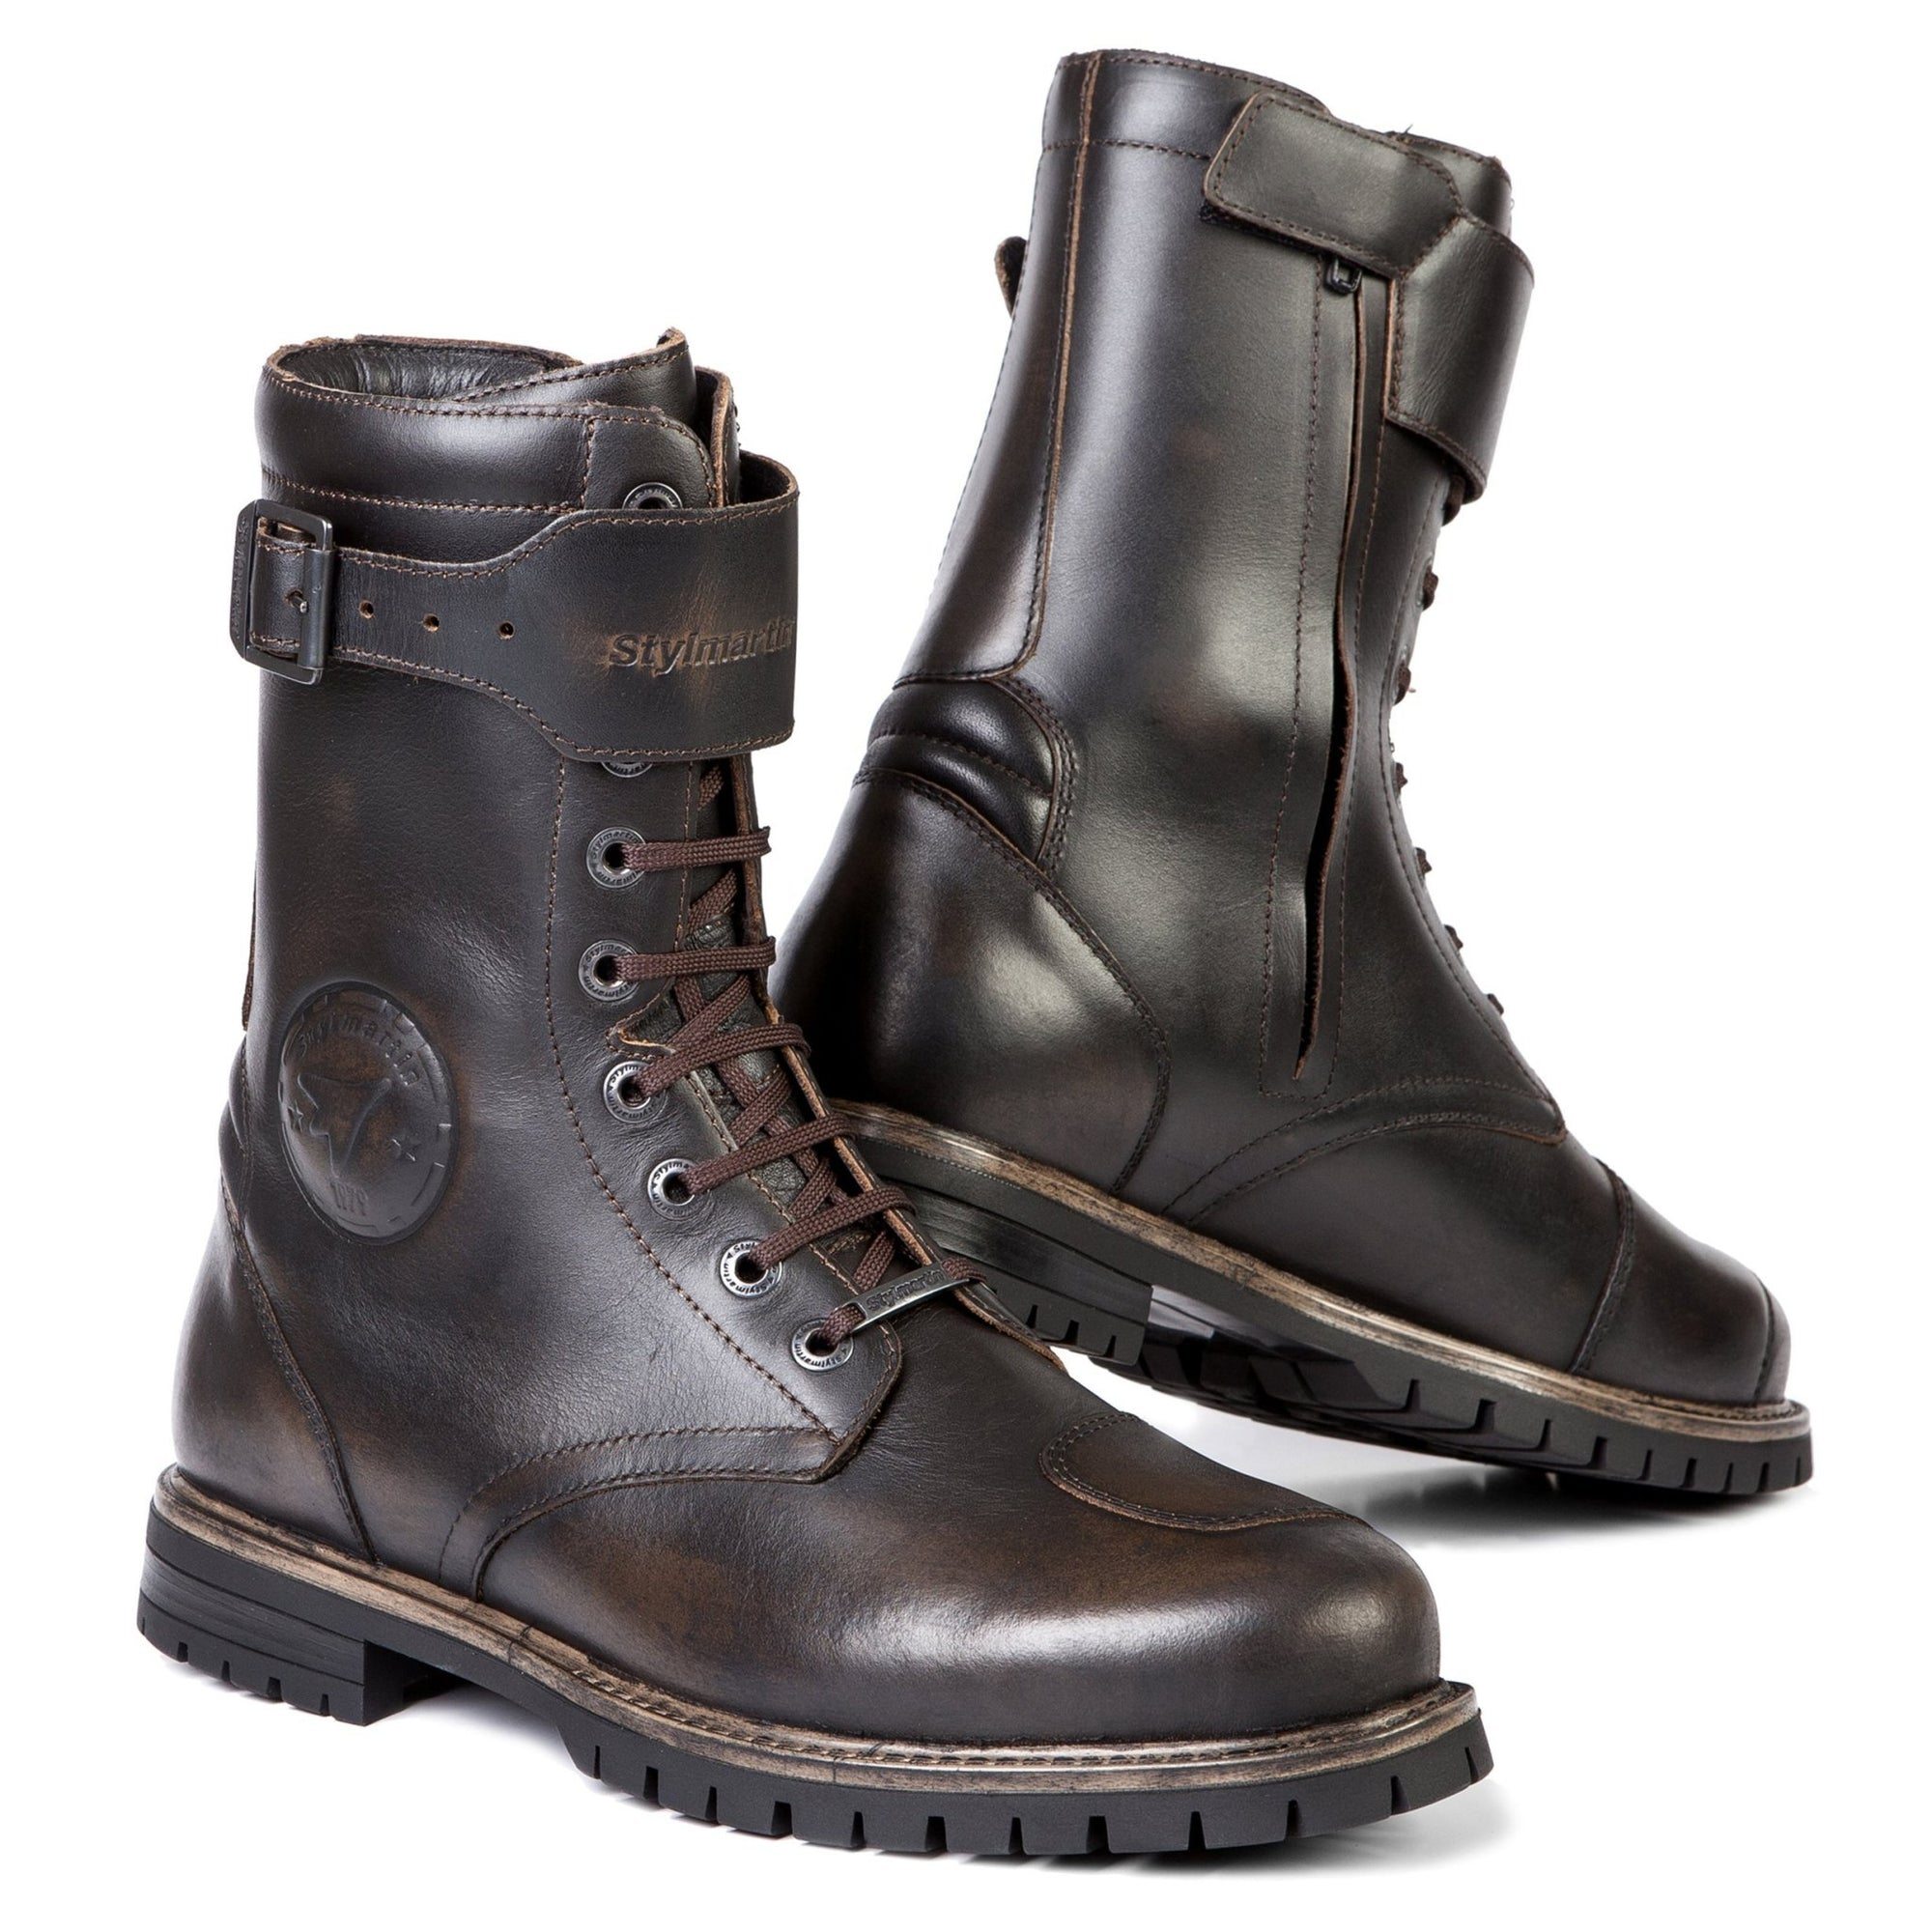 Stylmartin - Stylmartin Rocket WP Urban in Brown - Boots - Salt Flats Clothing